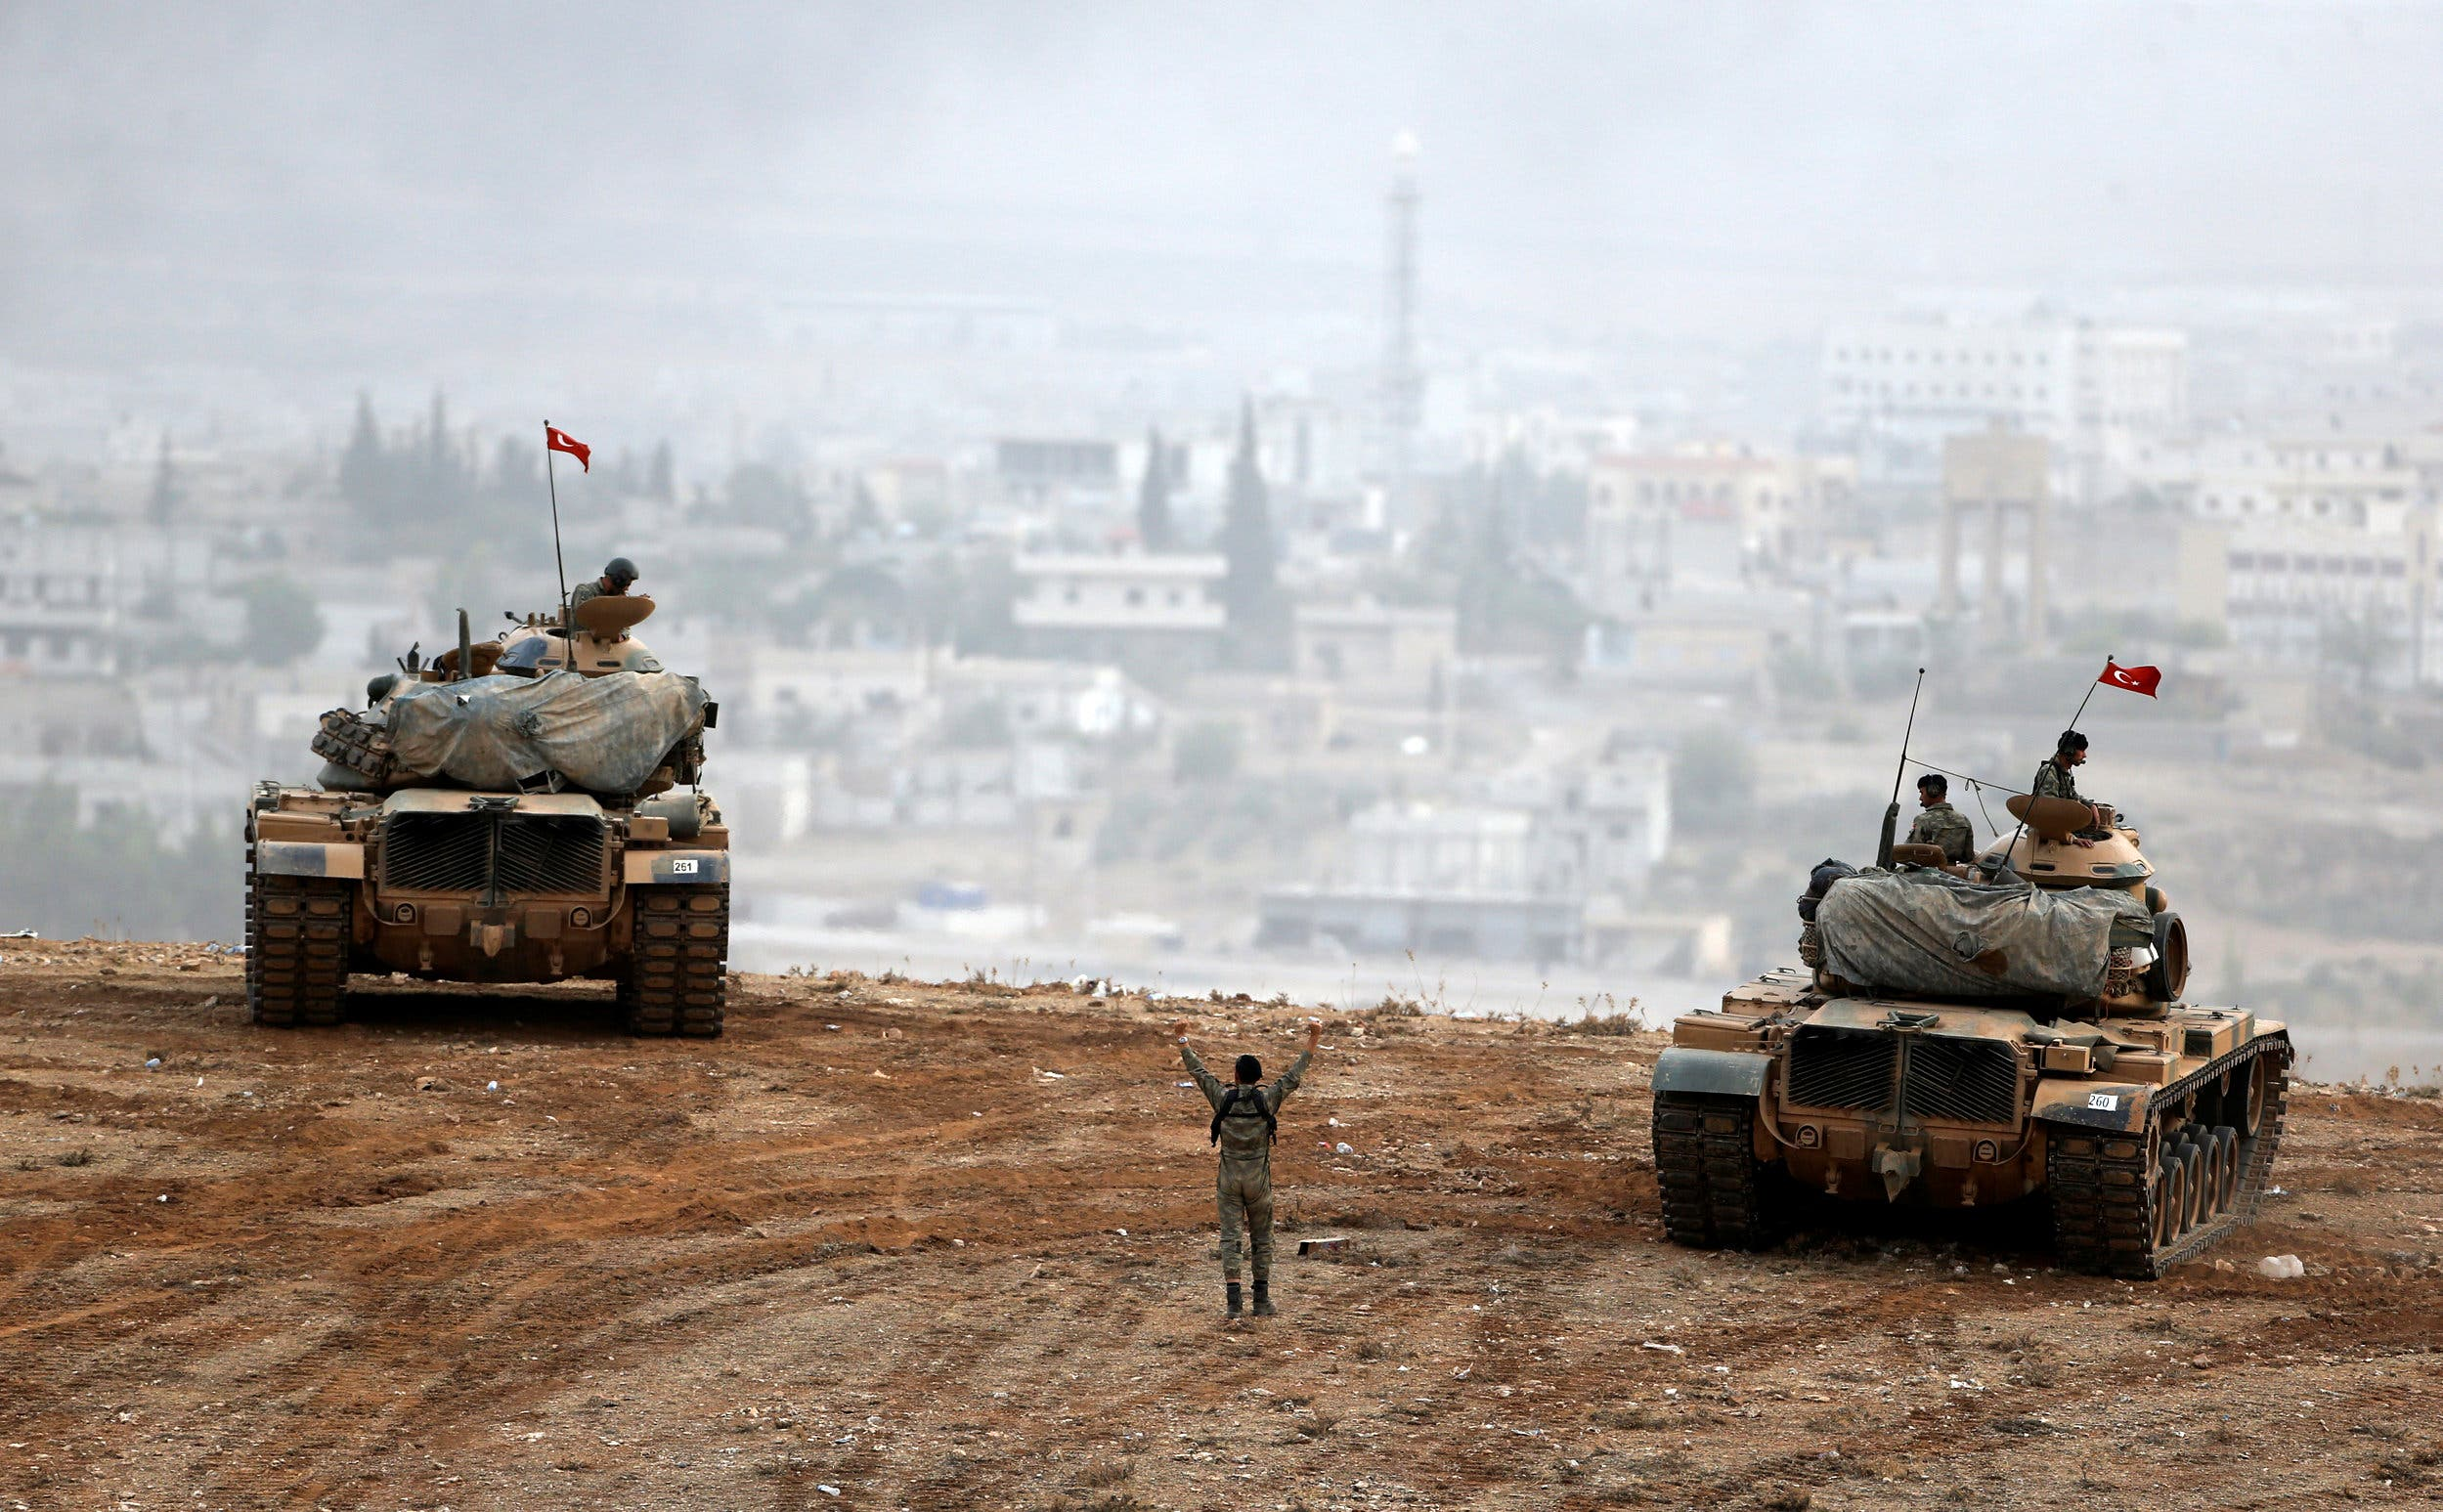 Turkish army tanks take position on top of a hill near Mursitpinar border crossing in the southeastern Turkish town of Suruc in Sanliurfa province, Turkey, October 11, 2014. REUTERS